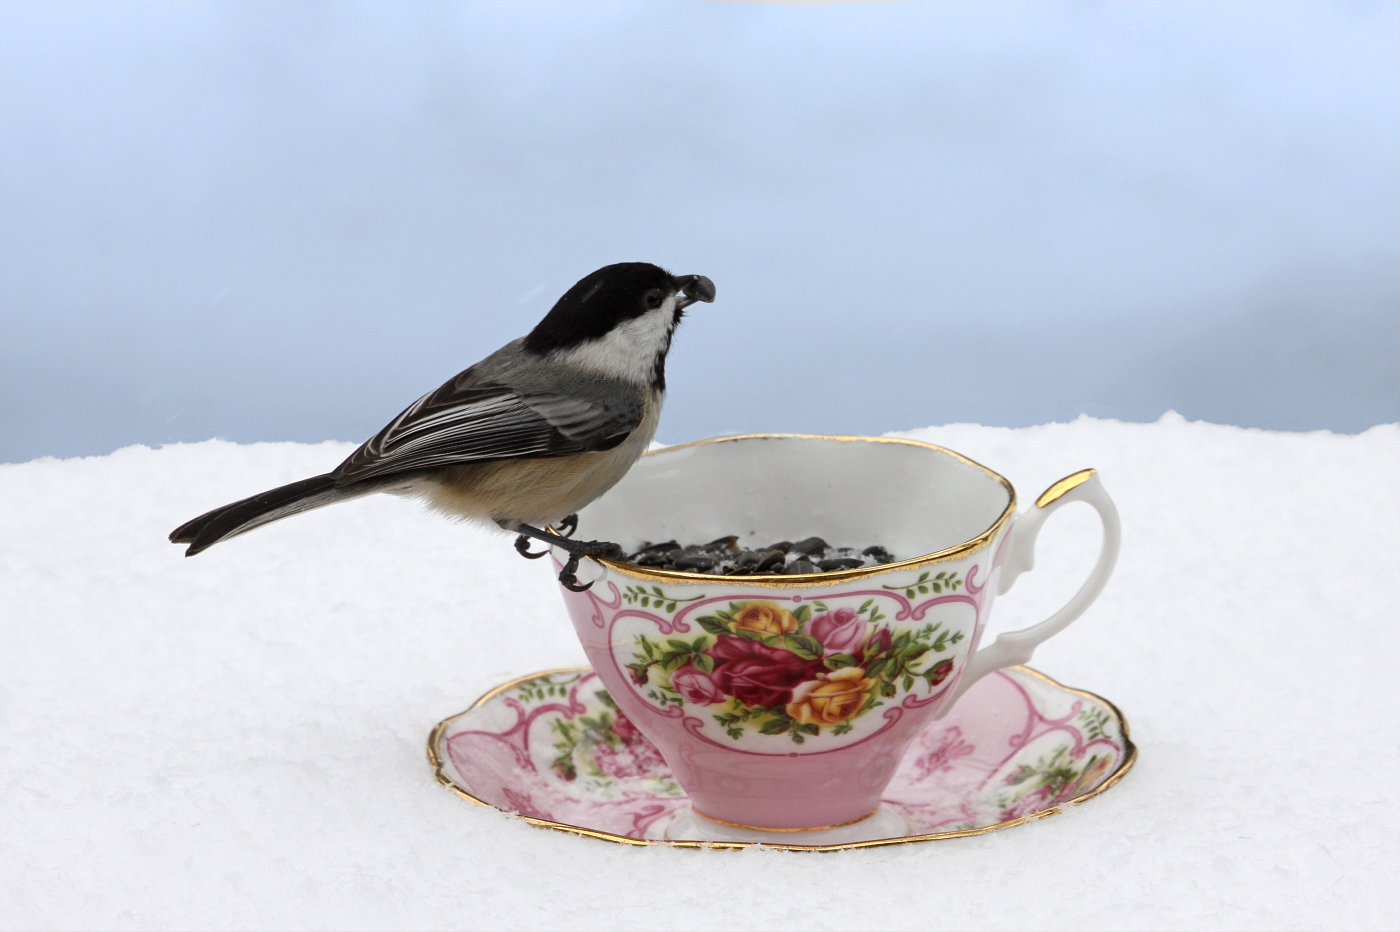 Teacup at the Feeder #4